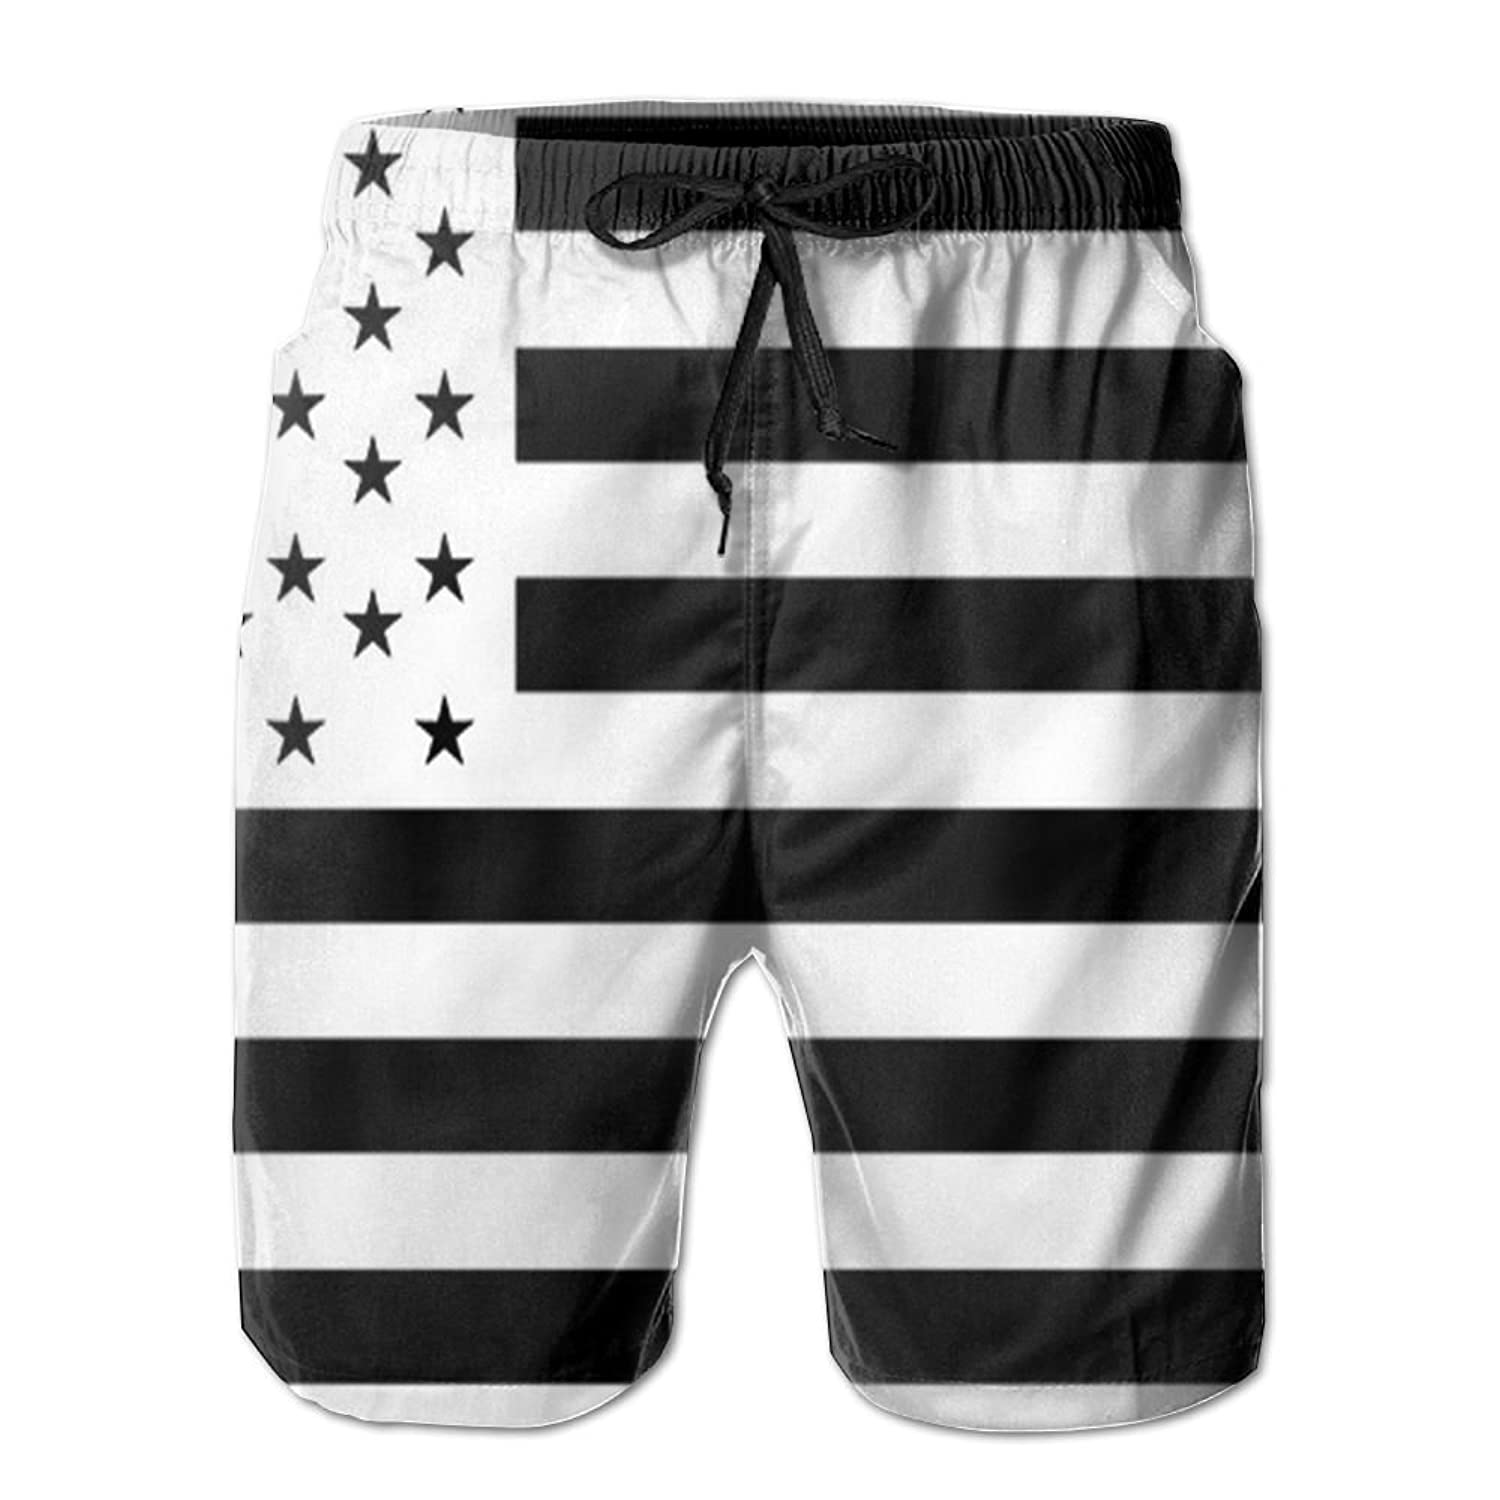 Chion mens quick 3d printing dry beach shorts retro black white american flag casual shorts